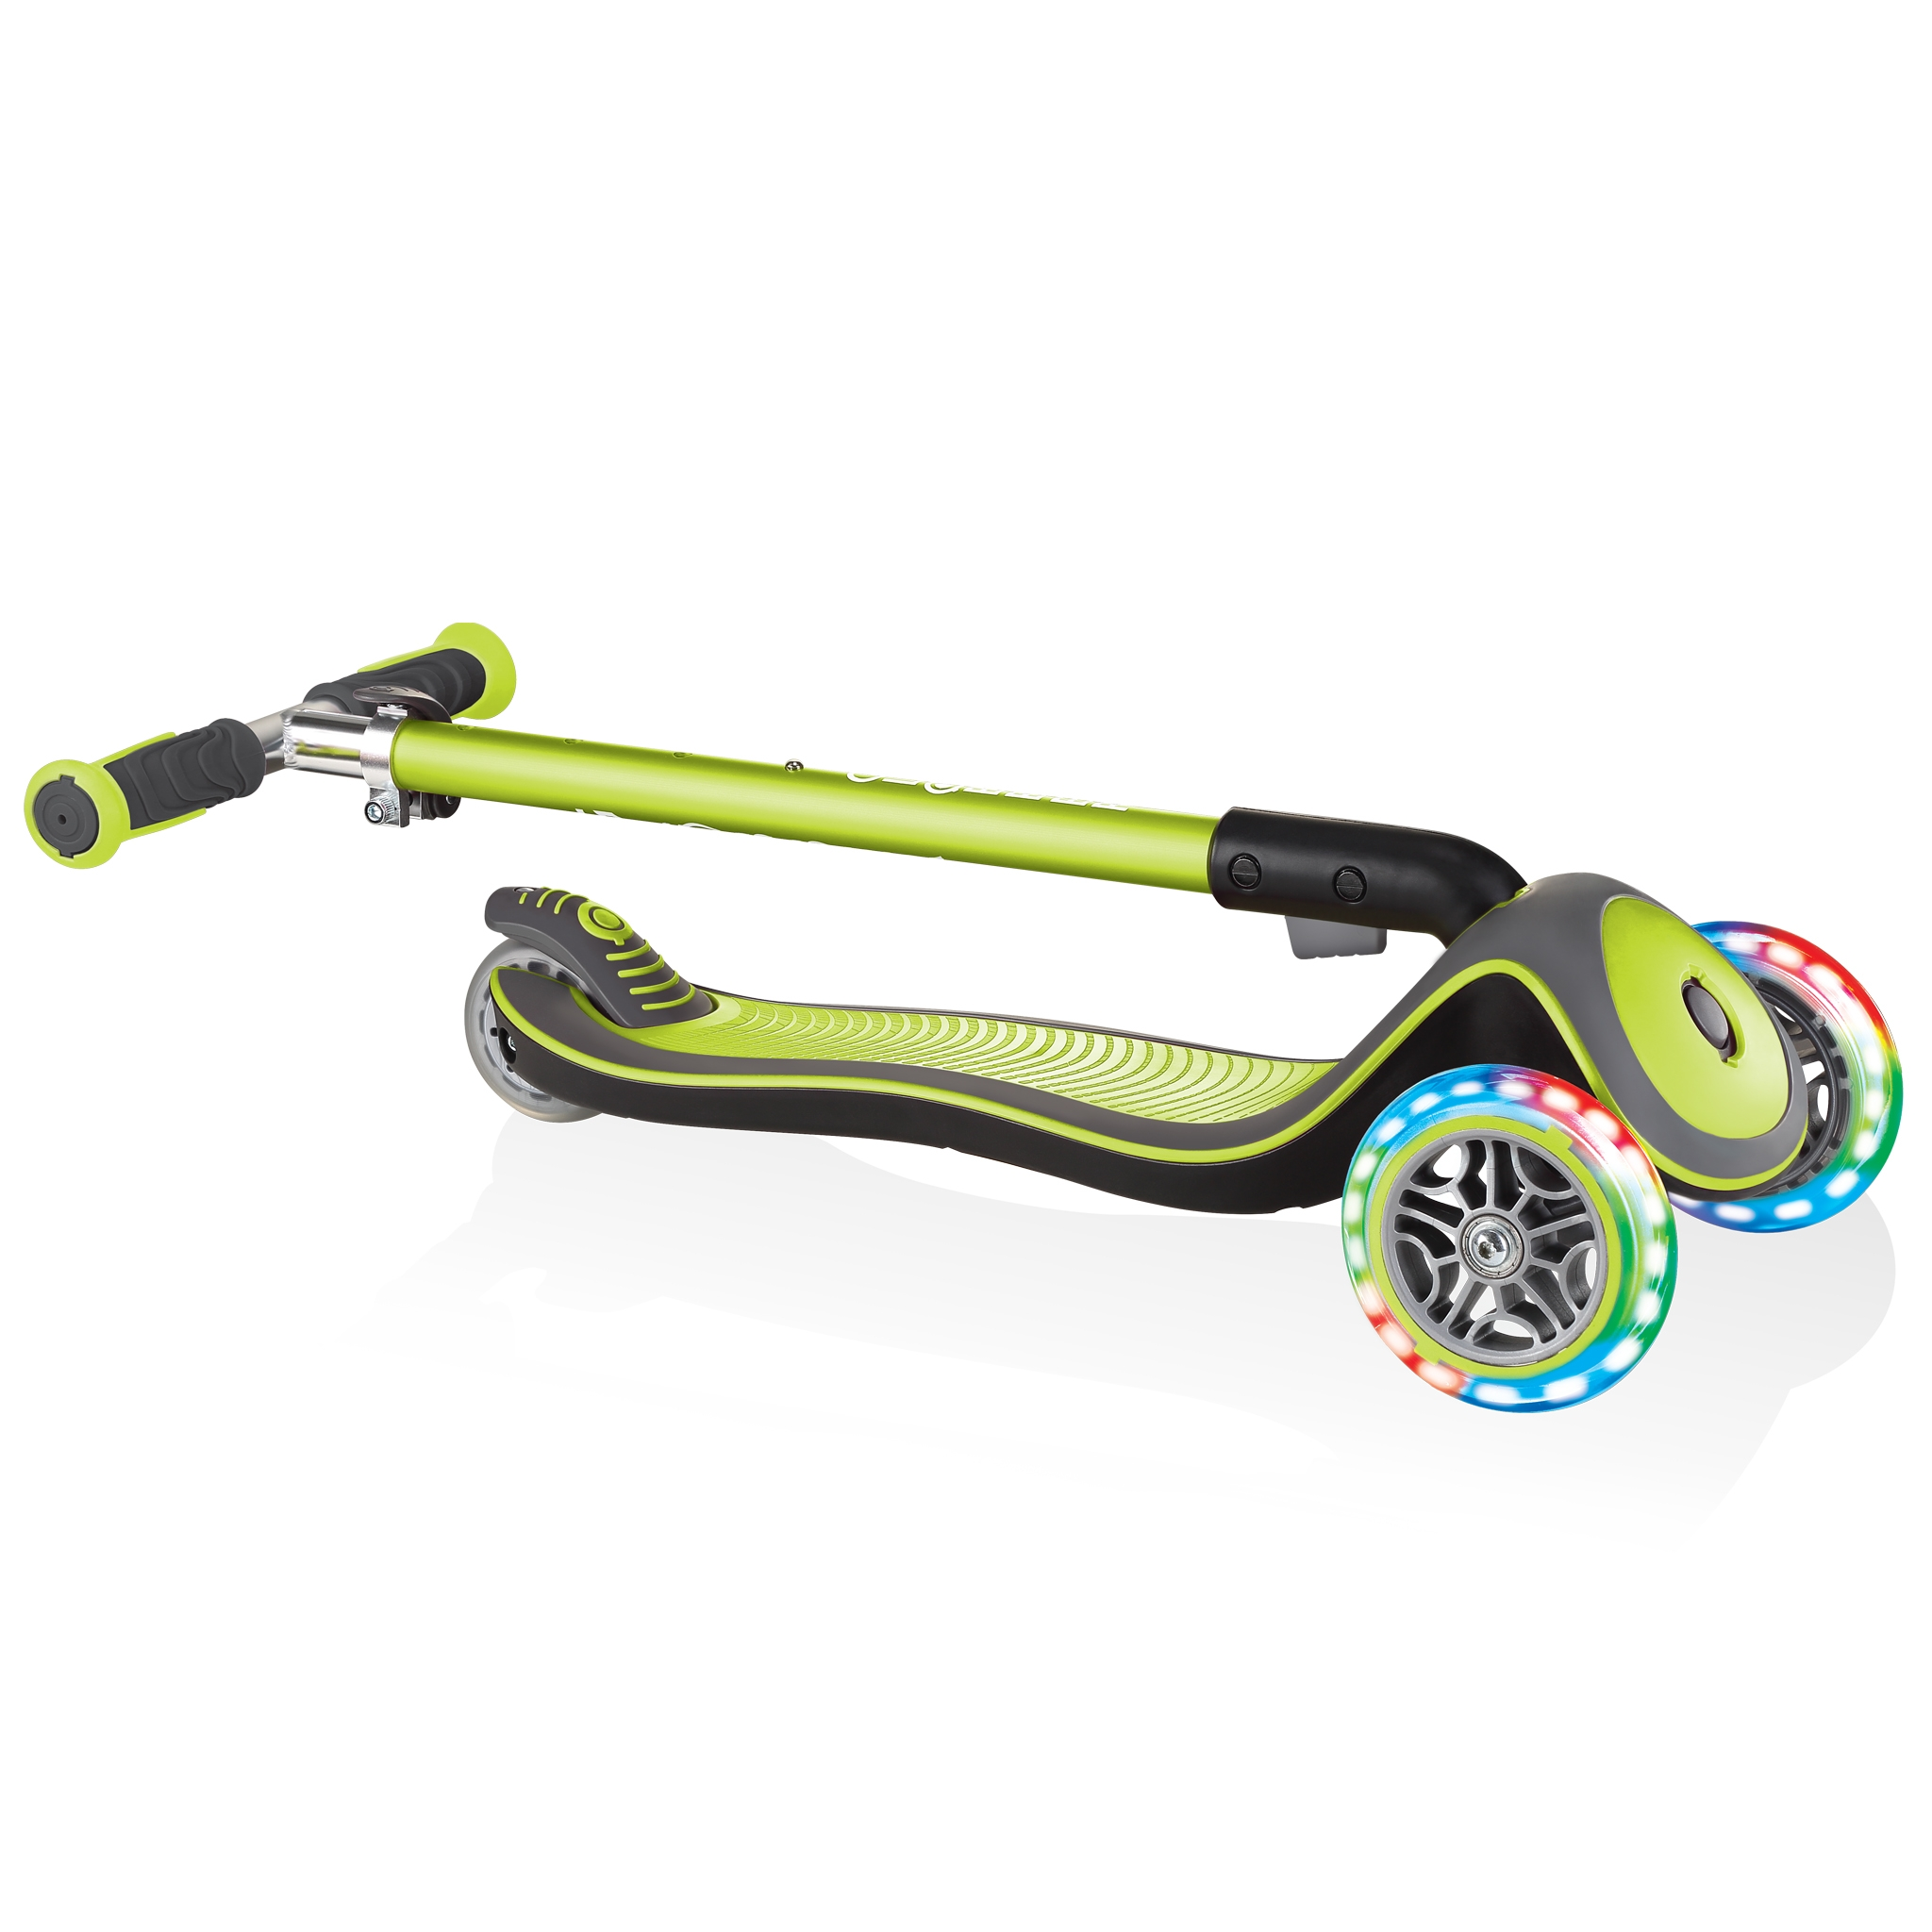 Globber-ELITE-DELUXE-LIGHTS-3-wheel-foldable-scooter-for-kids-with-light-up-scooter-wheels-lime-green